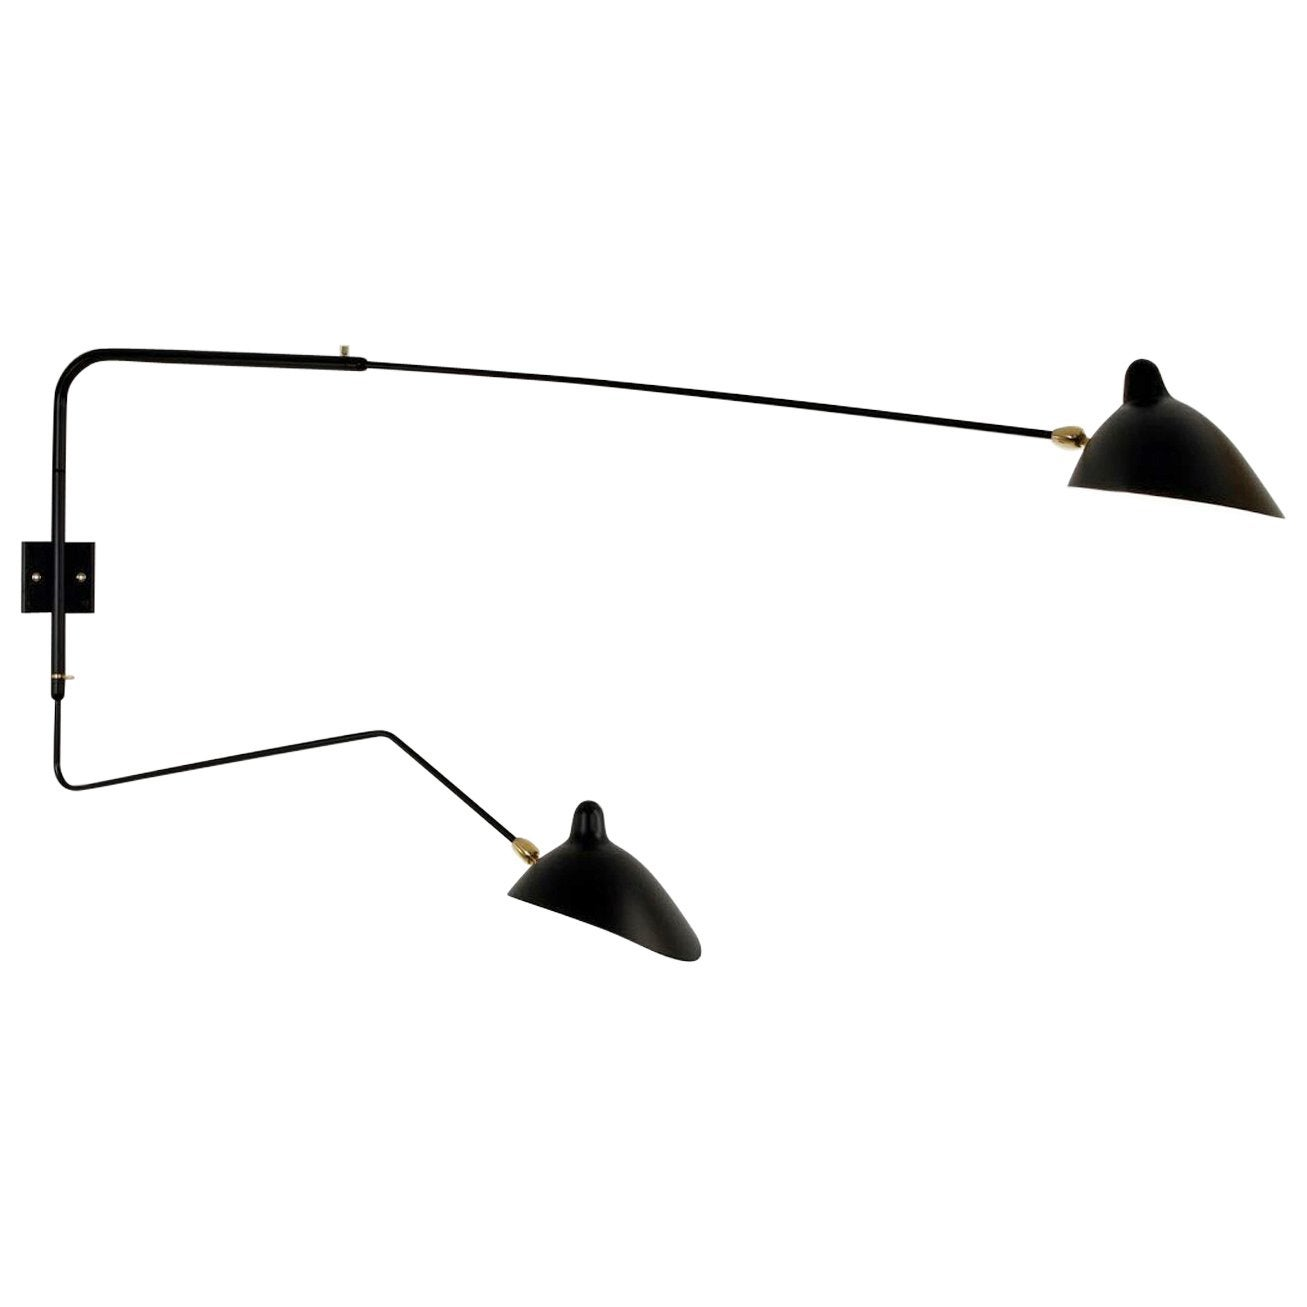 Serge Mouille Rotating Sconce Two Arms, One Curved